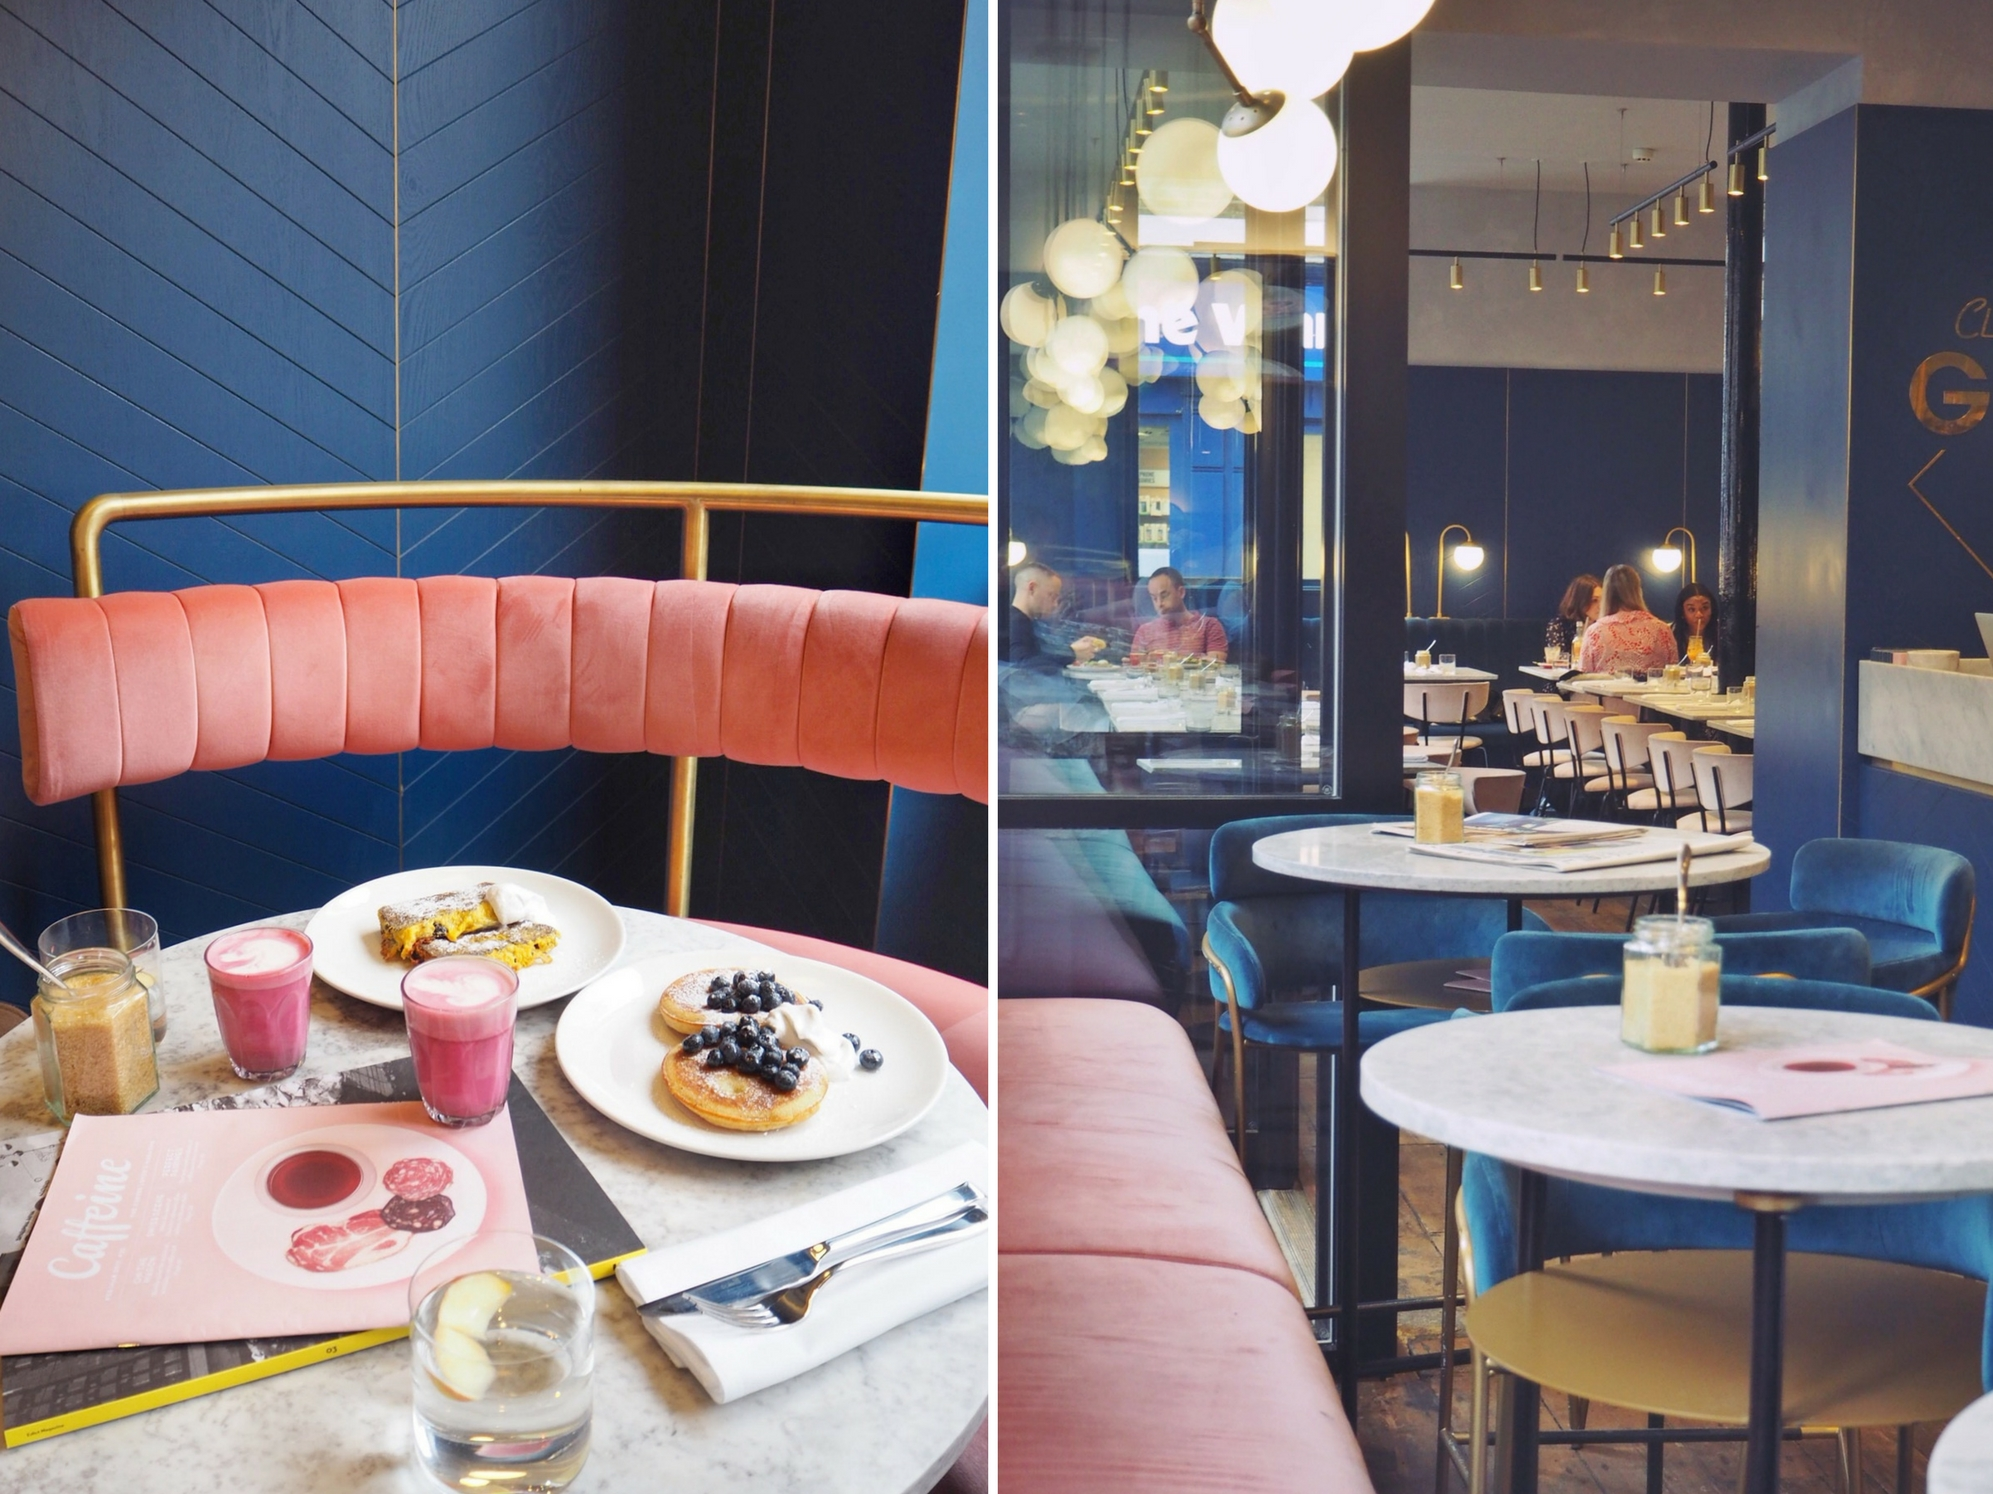 Clerkendwell Grind - London most Instagrammable cafe